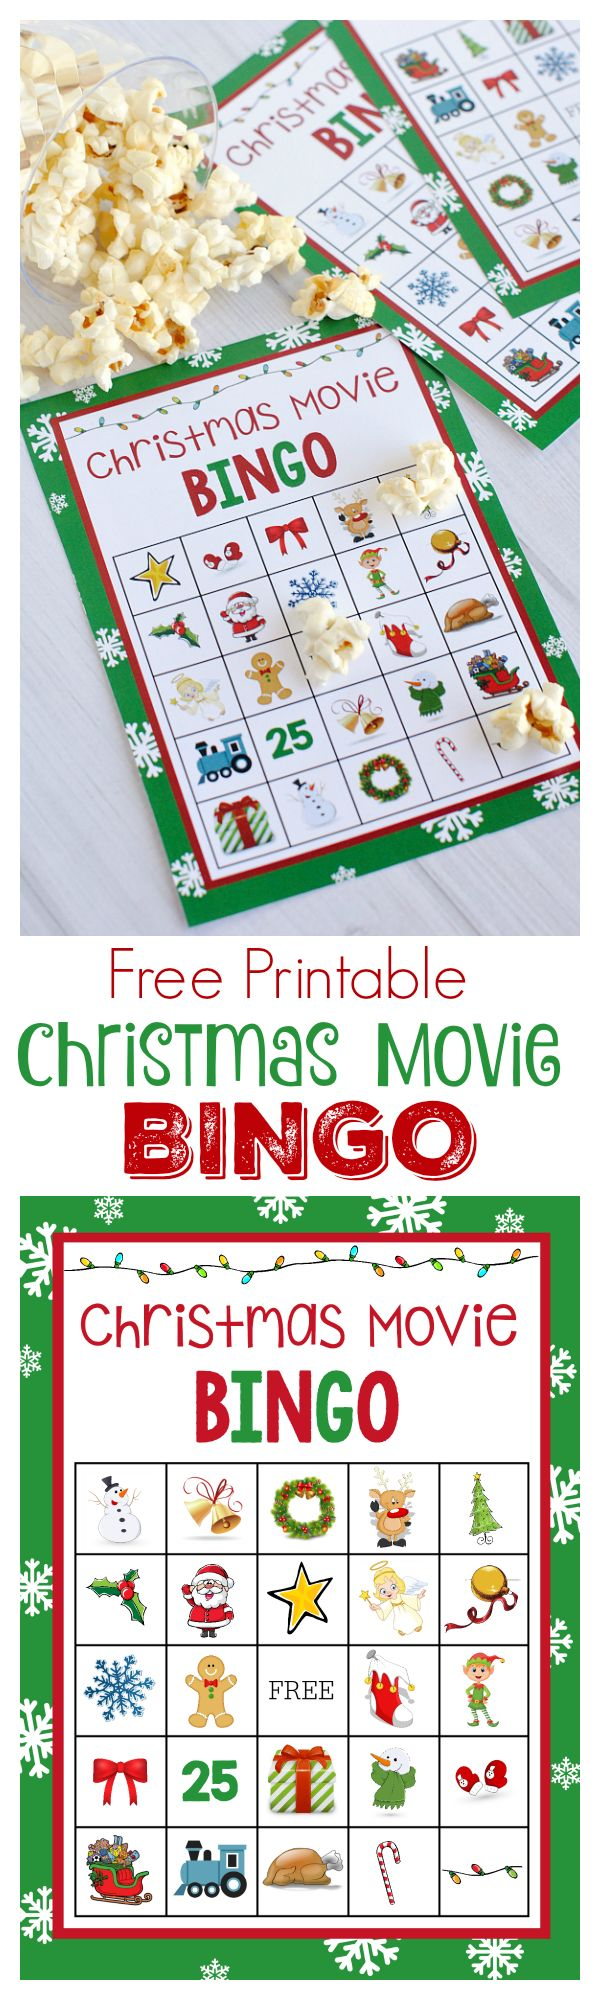 Christmas Movie Night party ideas, games, treats and more. Perfect holiday party ideas.